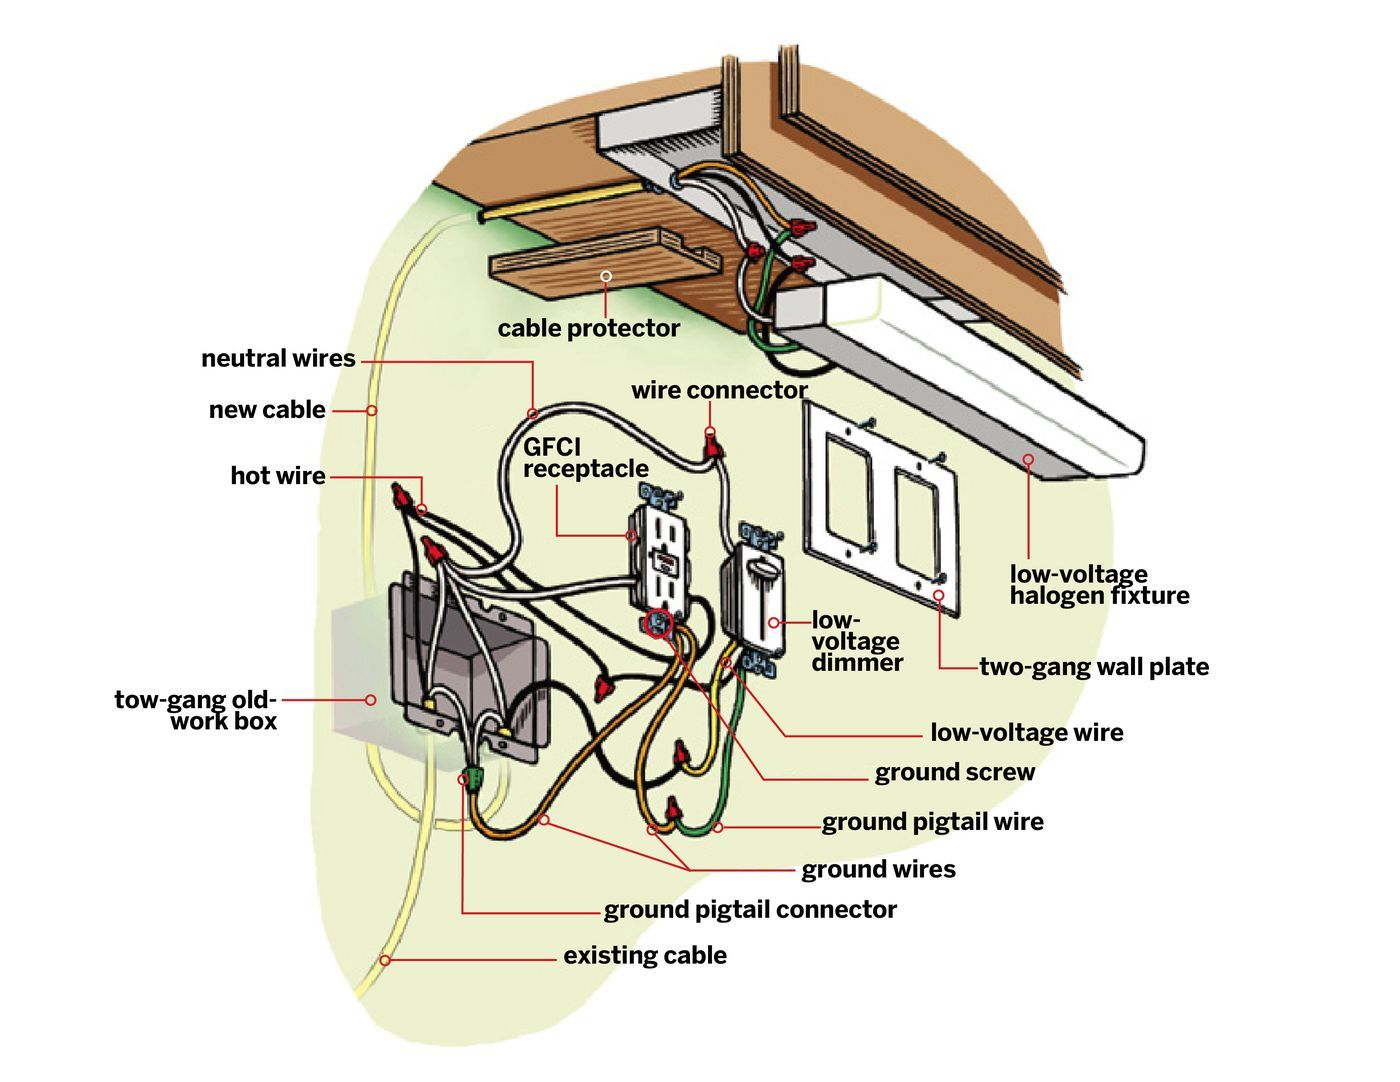 How To Install Undercabinet Lighting In 2020 Installing Under Cabinet Lighting Under Cabinet Lighting Kitchen Under Cabinet Lighting